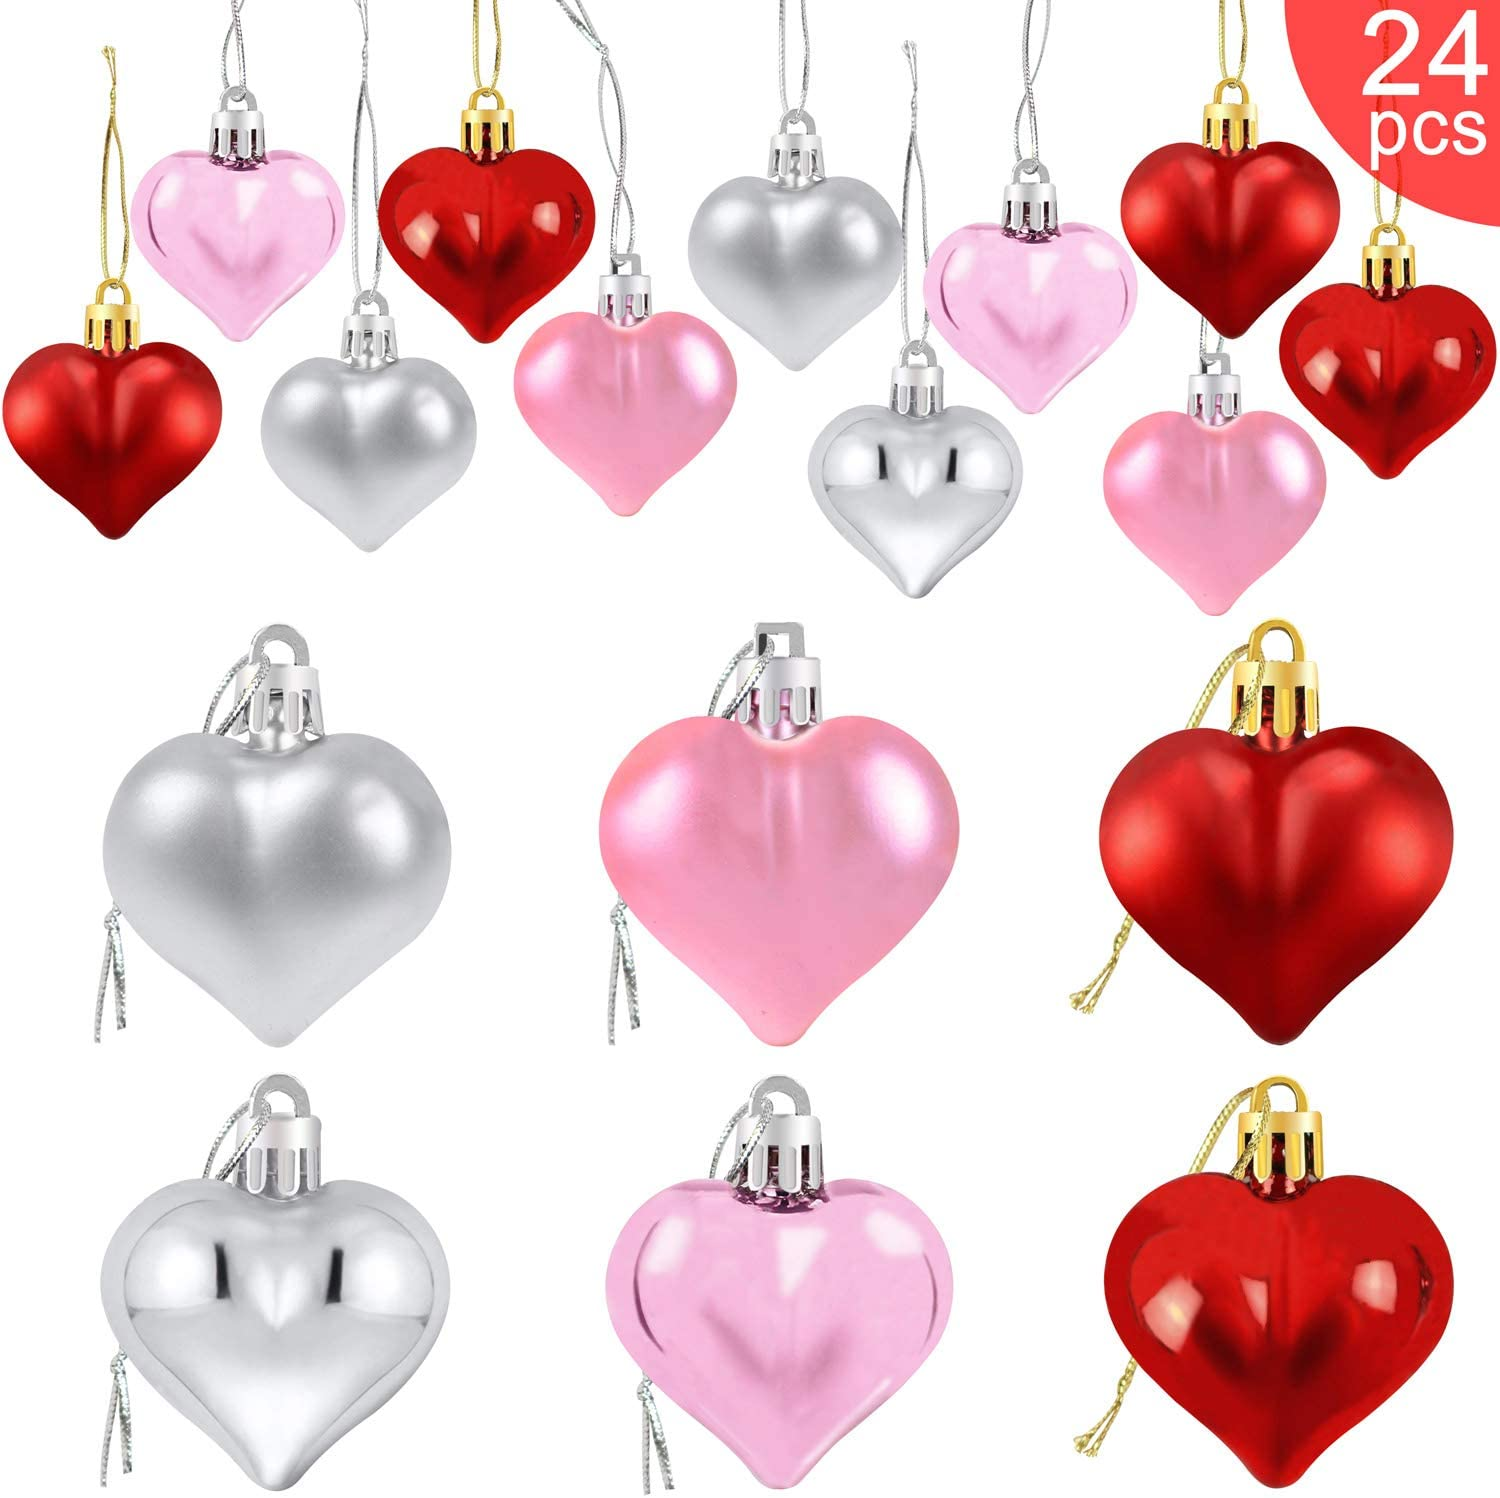 Partyprops 24Pcs Valentine's Day Heart Shaped Ornaments | Valentines Heart Decorations | Red Pink Silver Heart Shaped Baubles | Romantic Valentine's Day Hanging Decorations